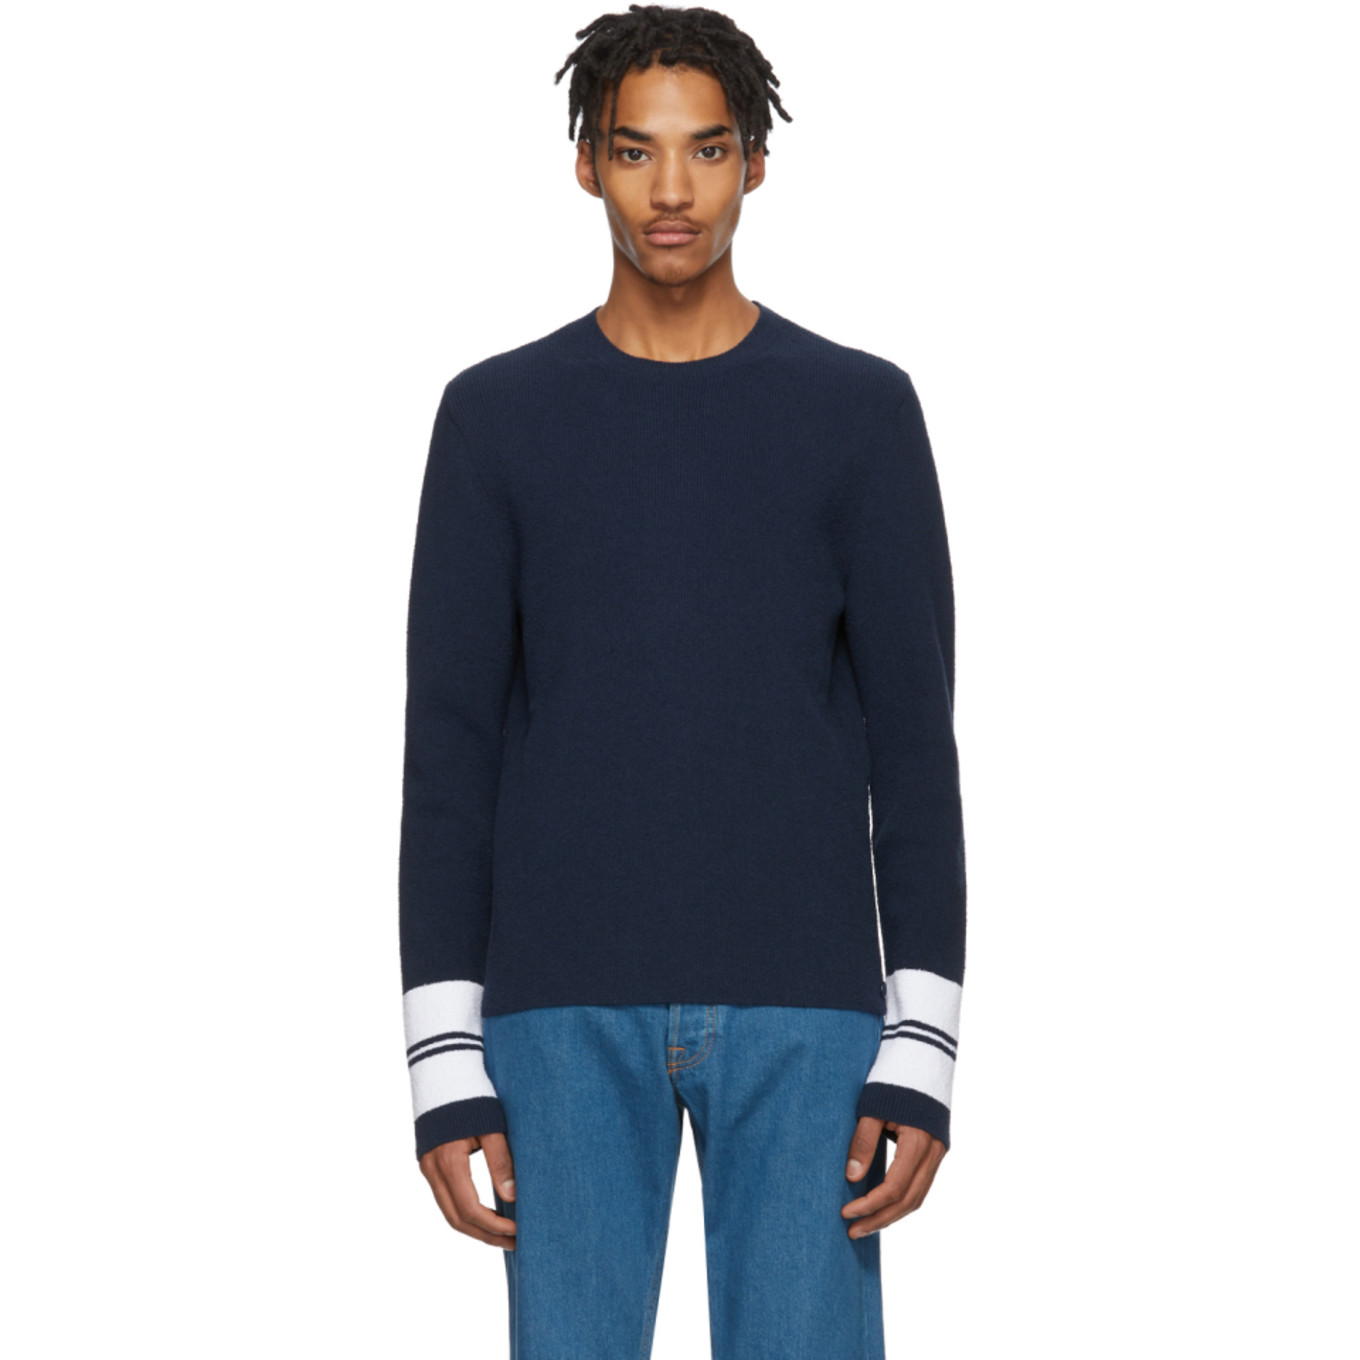 Blue Terry Cloth Sweater by Lanvin